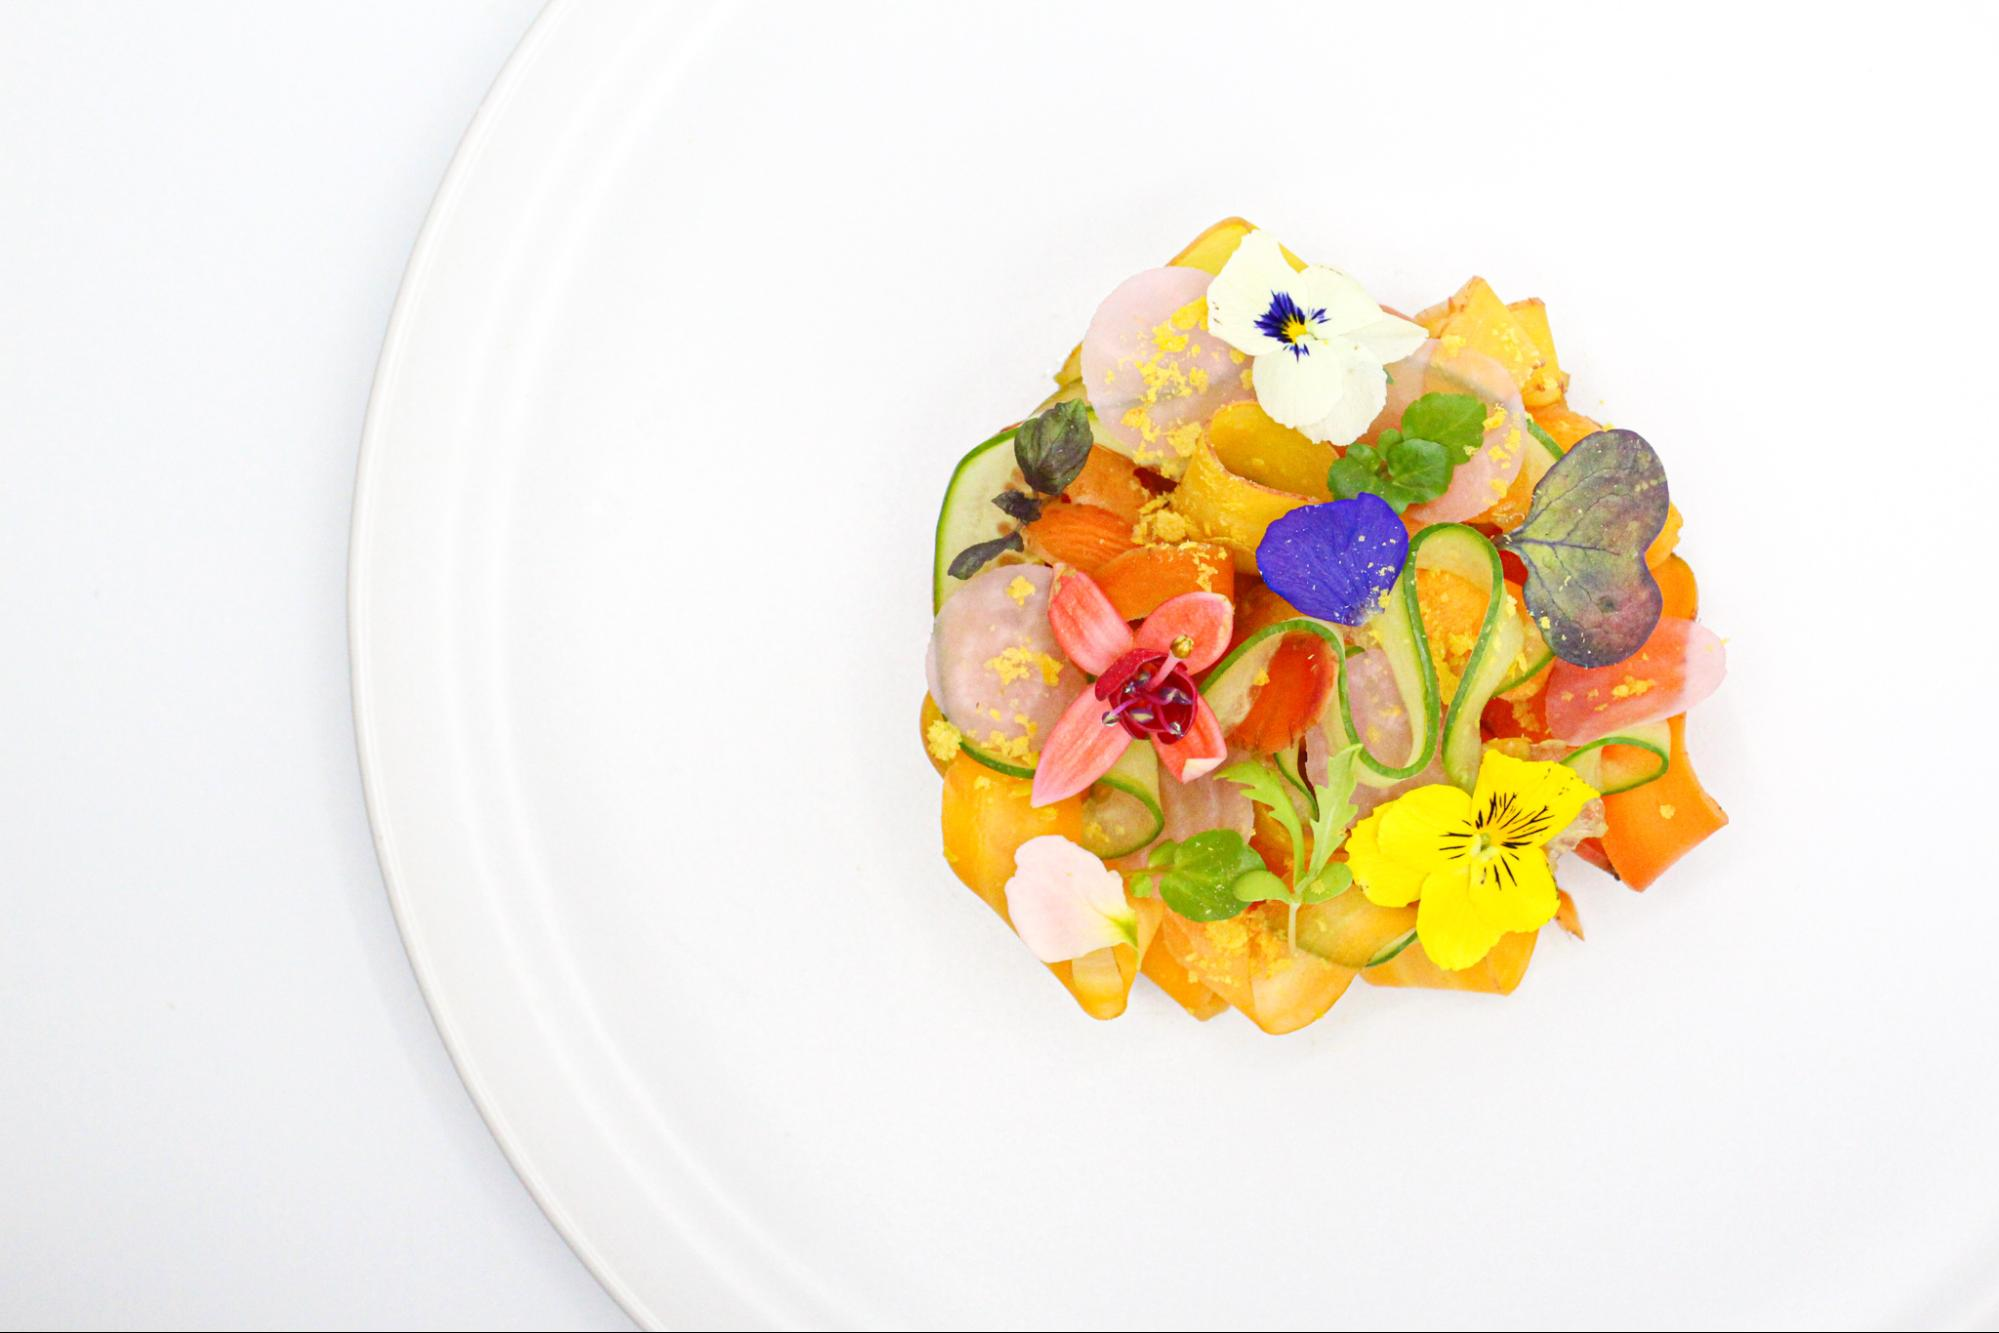 Dish 2: Carrot and cucumber ribbon salad, pickled carrots, spicy mustard & carrot puree, sour pickled radish rounds, micro greens, edible flowers